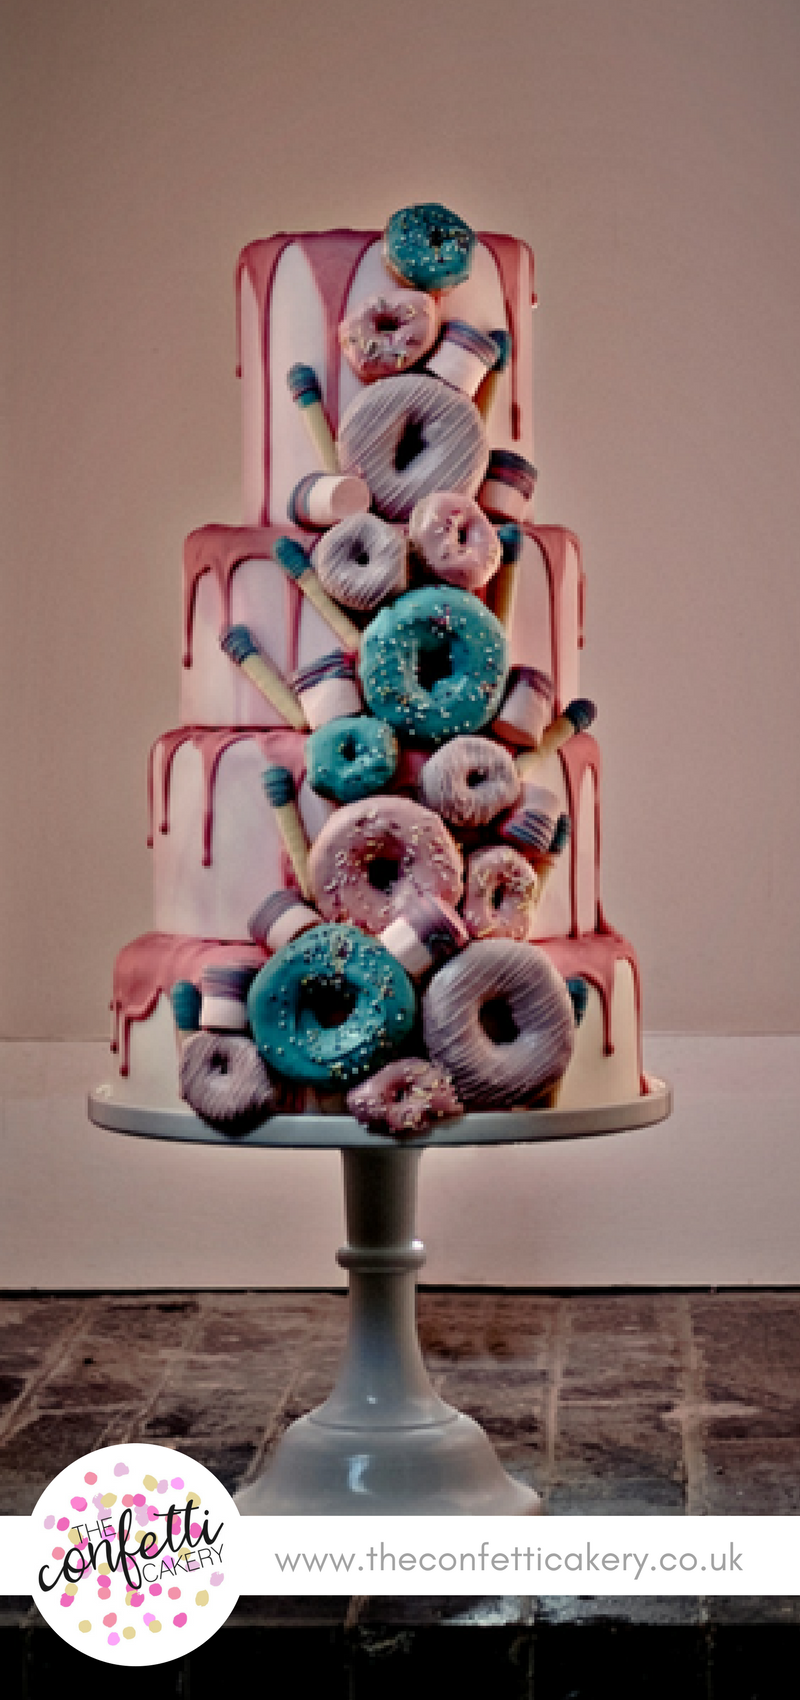 Delicious Doughnut Drip Wedding Cake The Confetti Cakery Image Samantha Hook